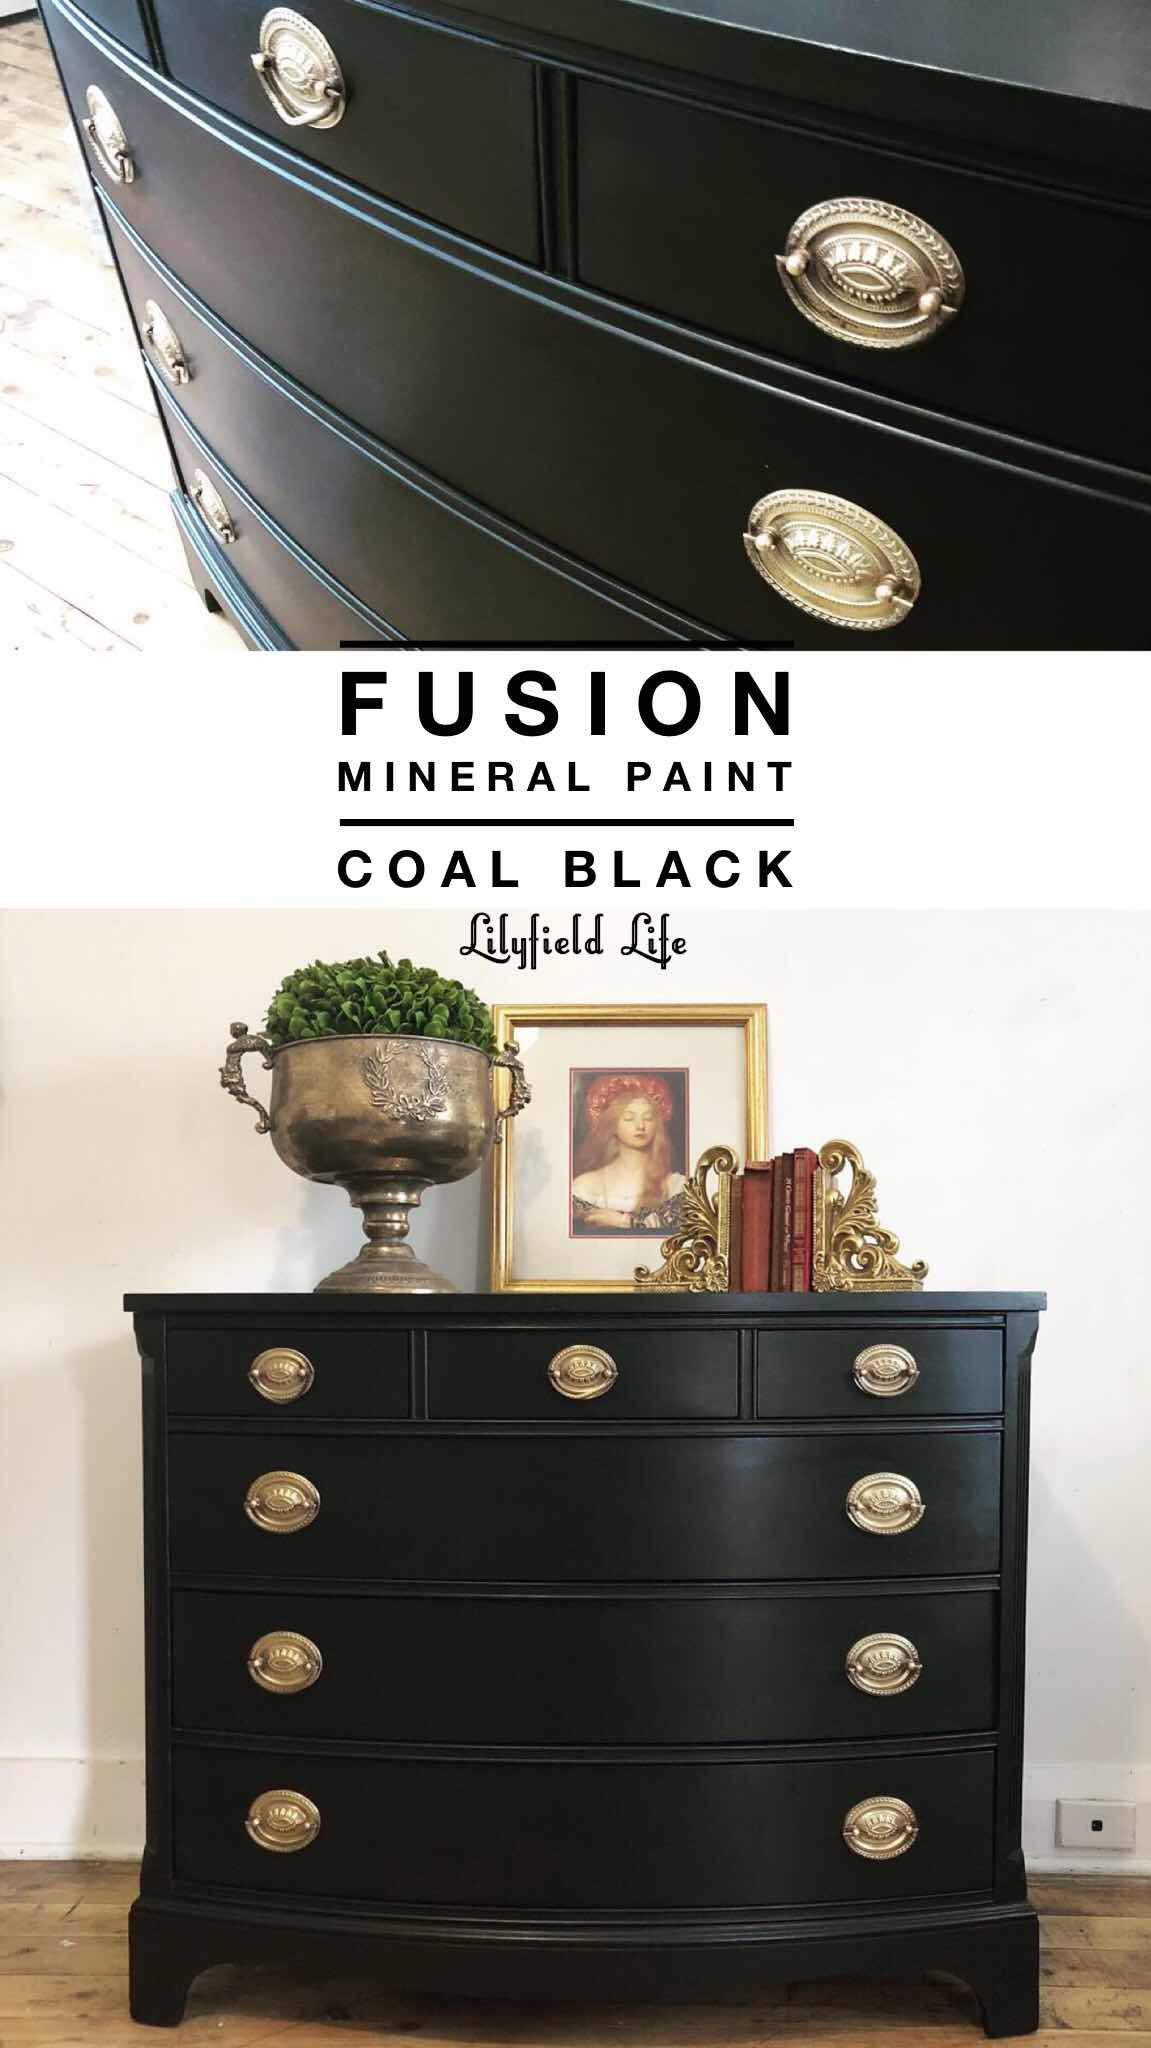 Fusion Mineral paint coal black